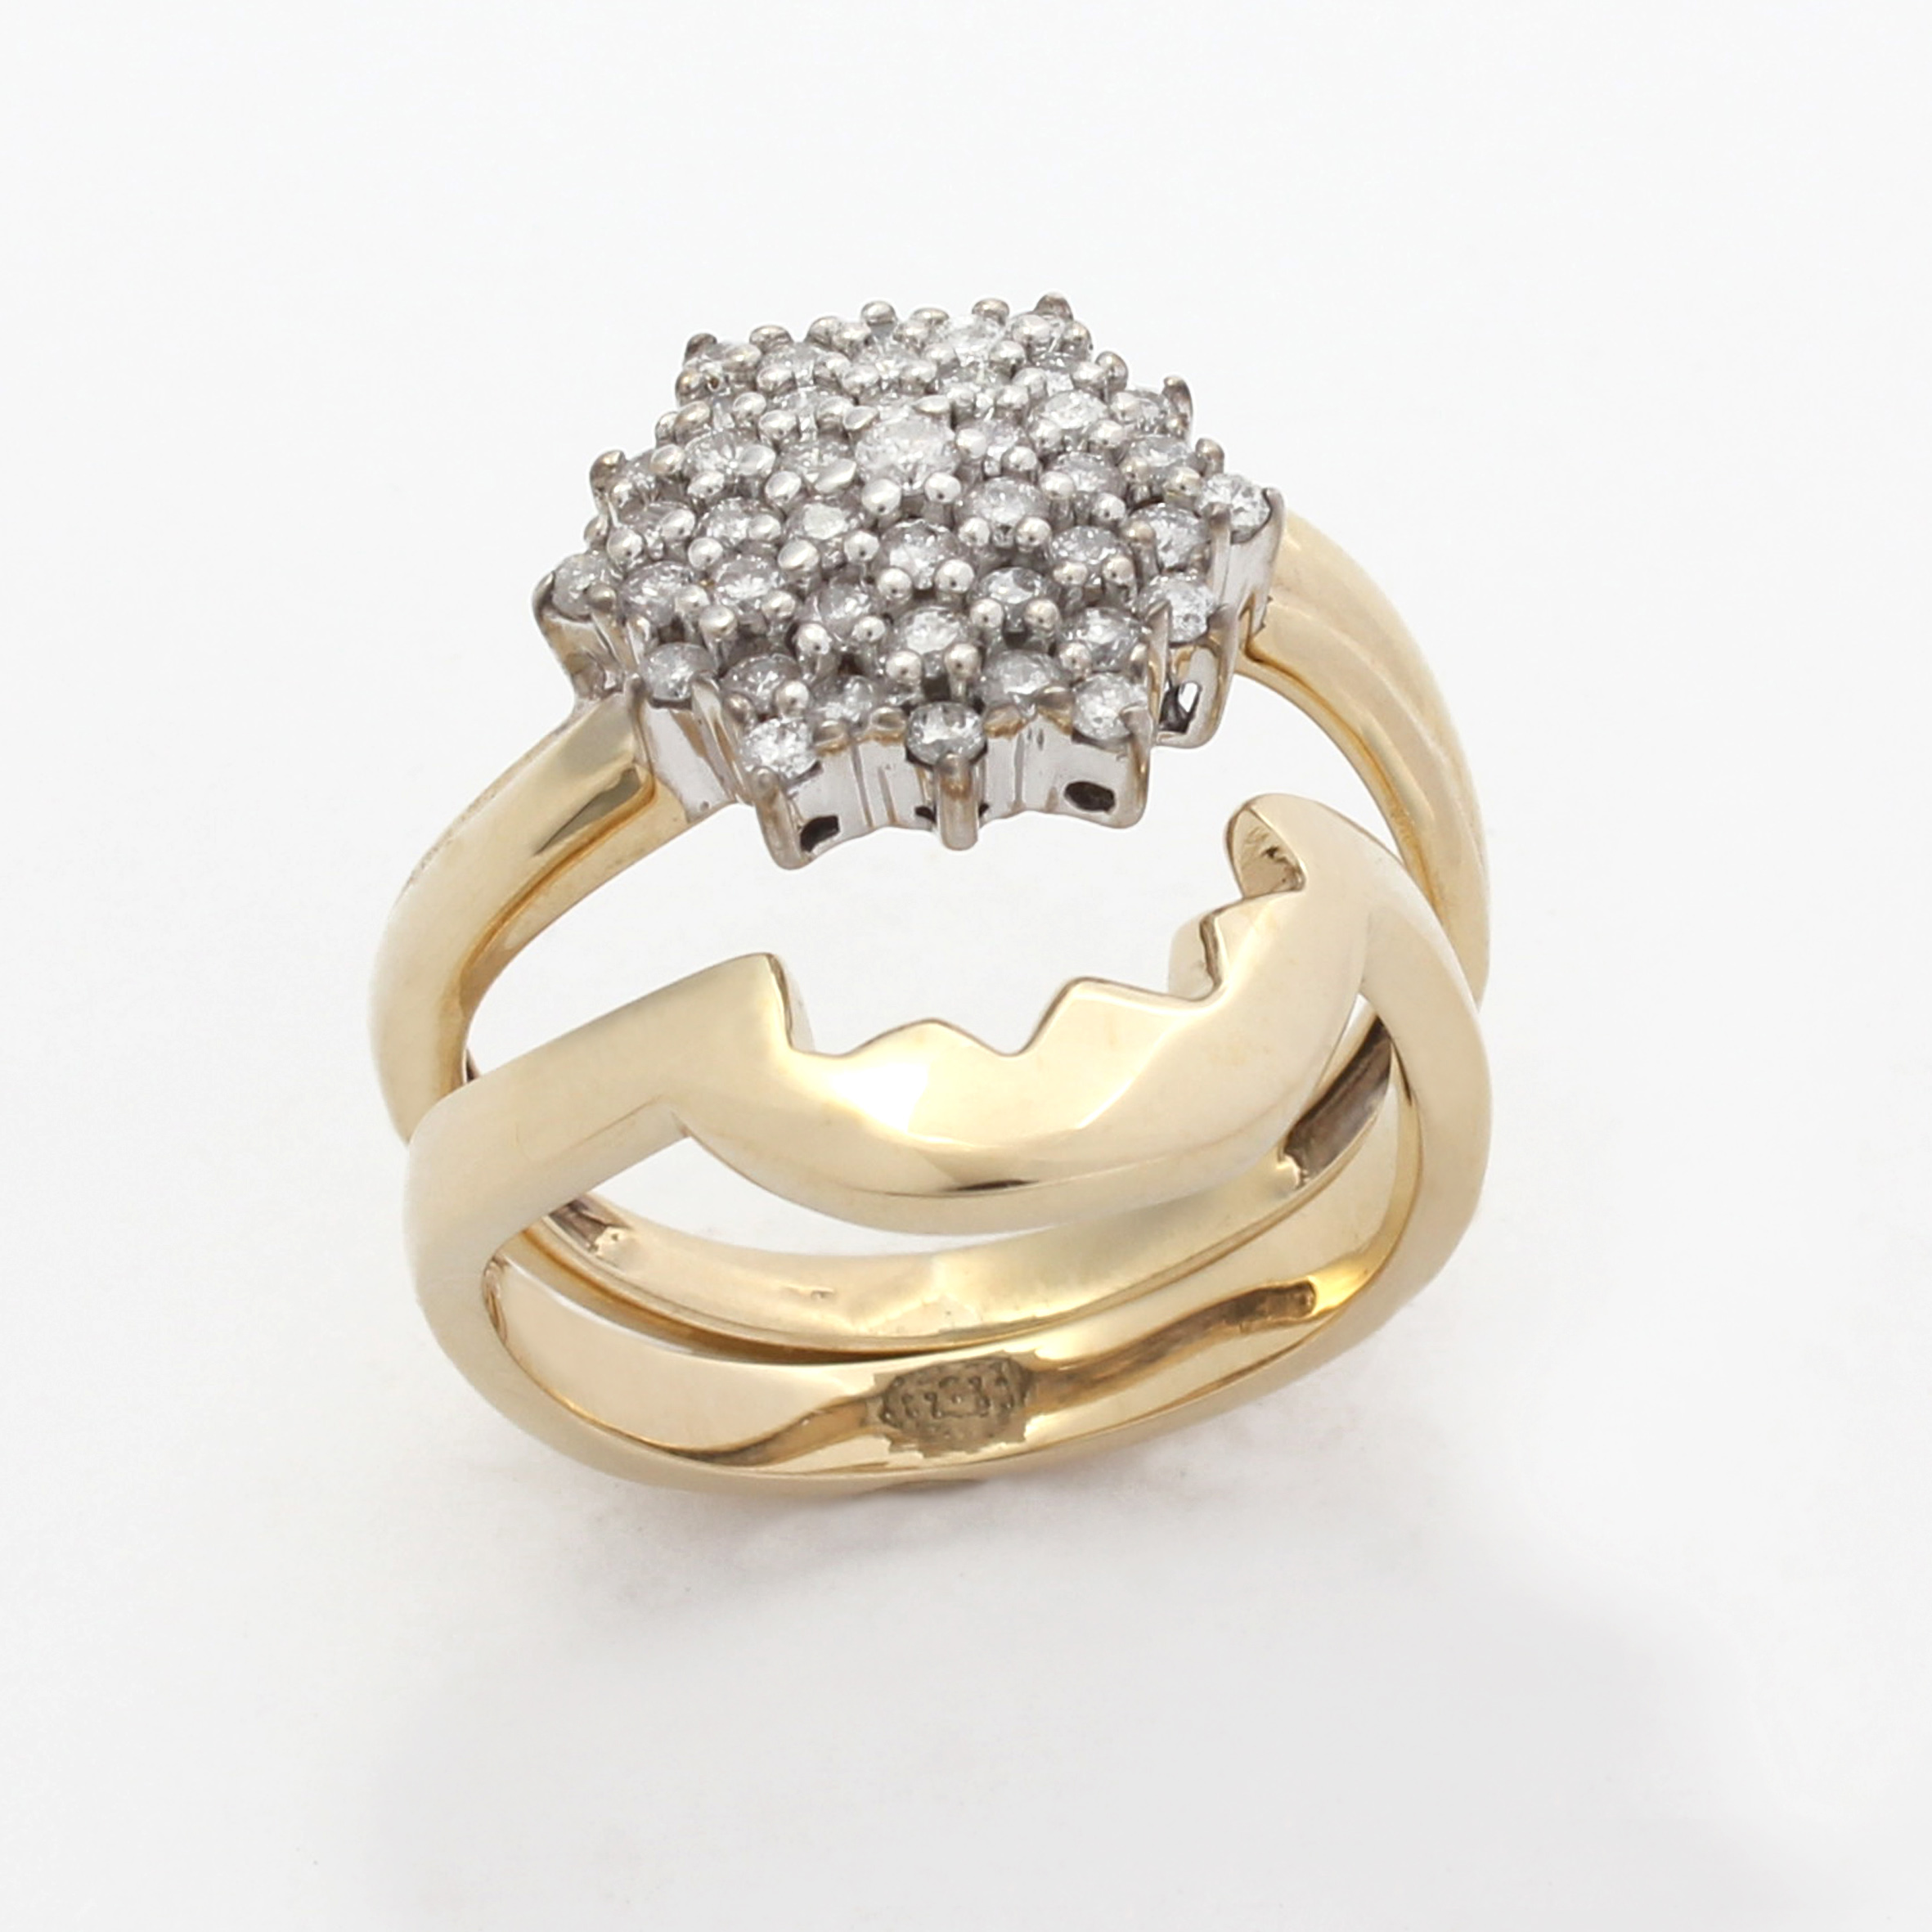 Shaped wedding ring to fit cluster engagement ring exactly